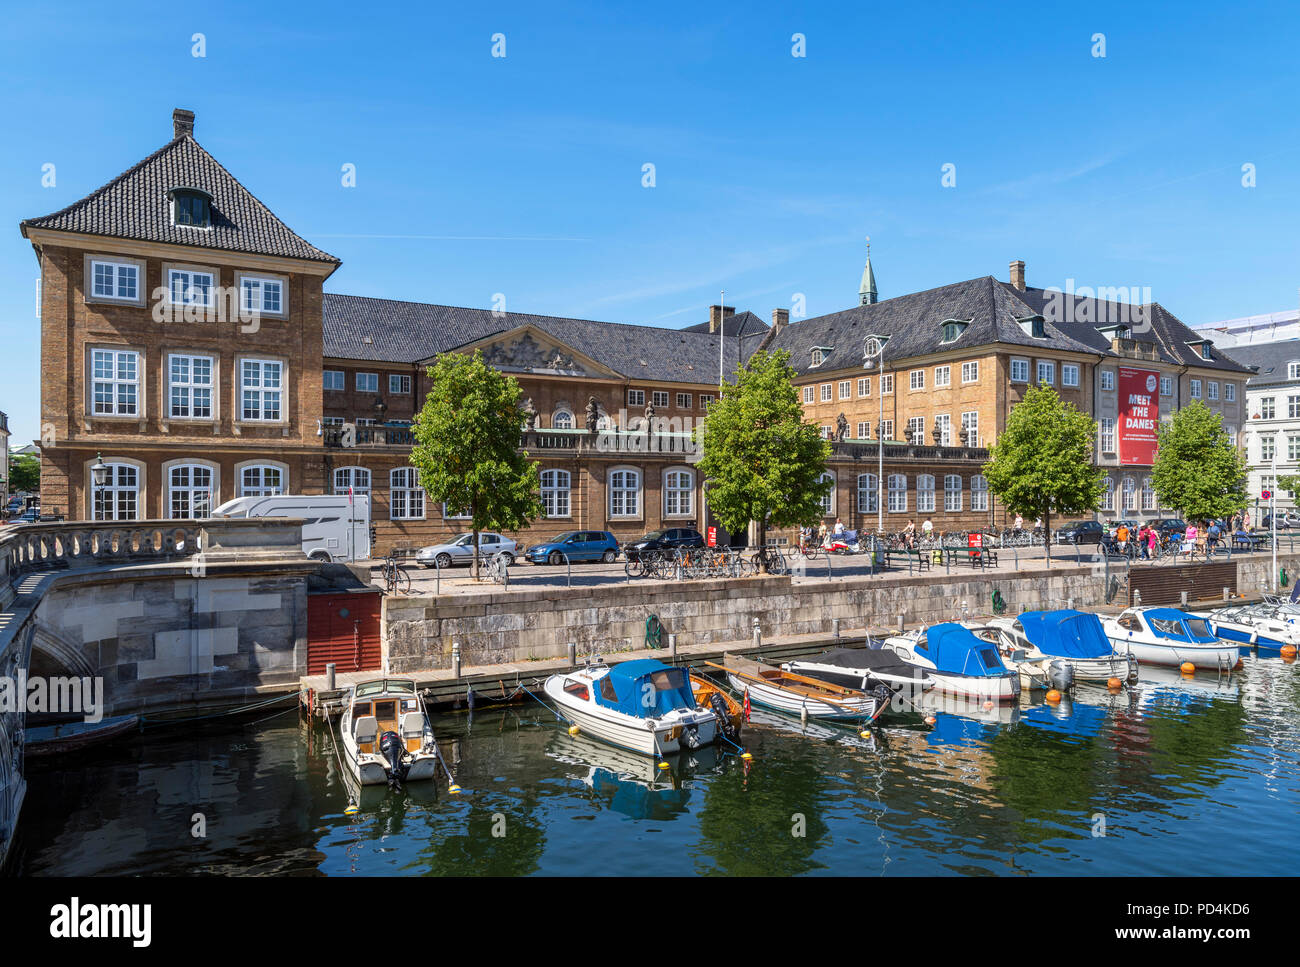 The National Museum (Nationalmuseet), Copenhagen, Zealand, Denmark - Stock Image